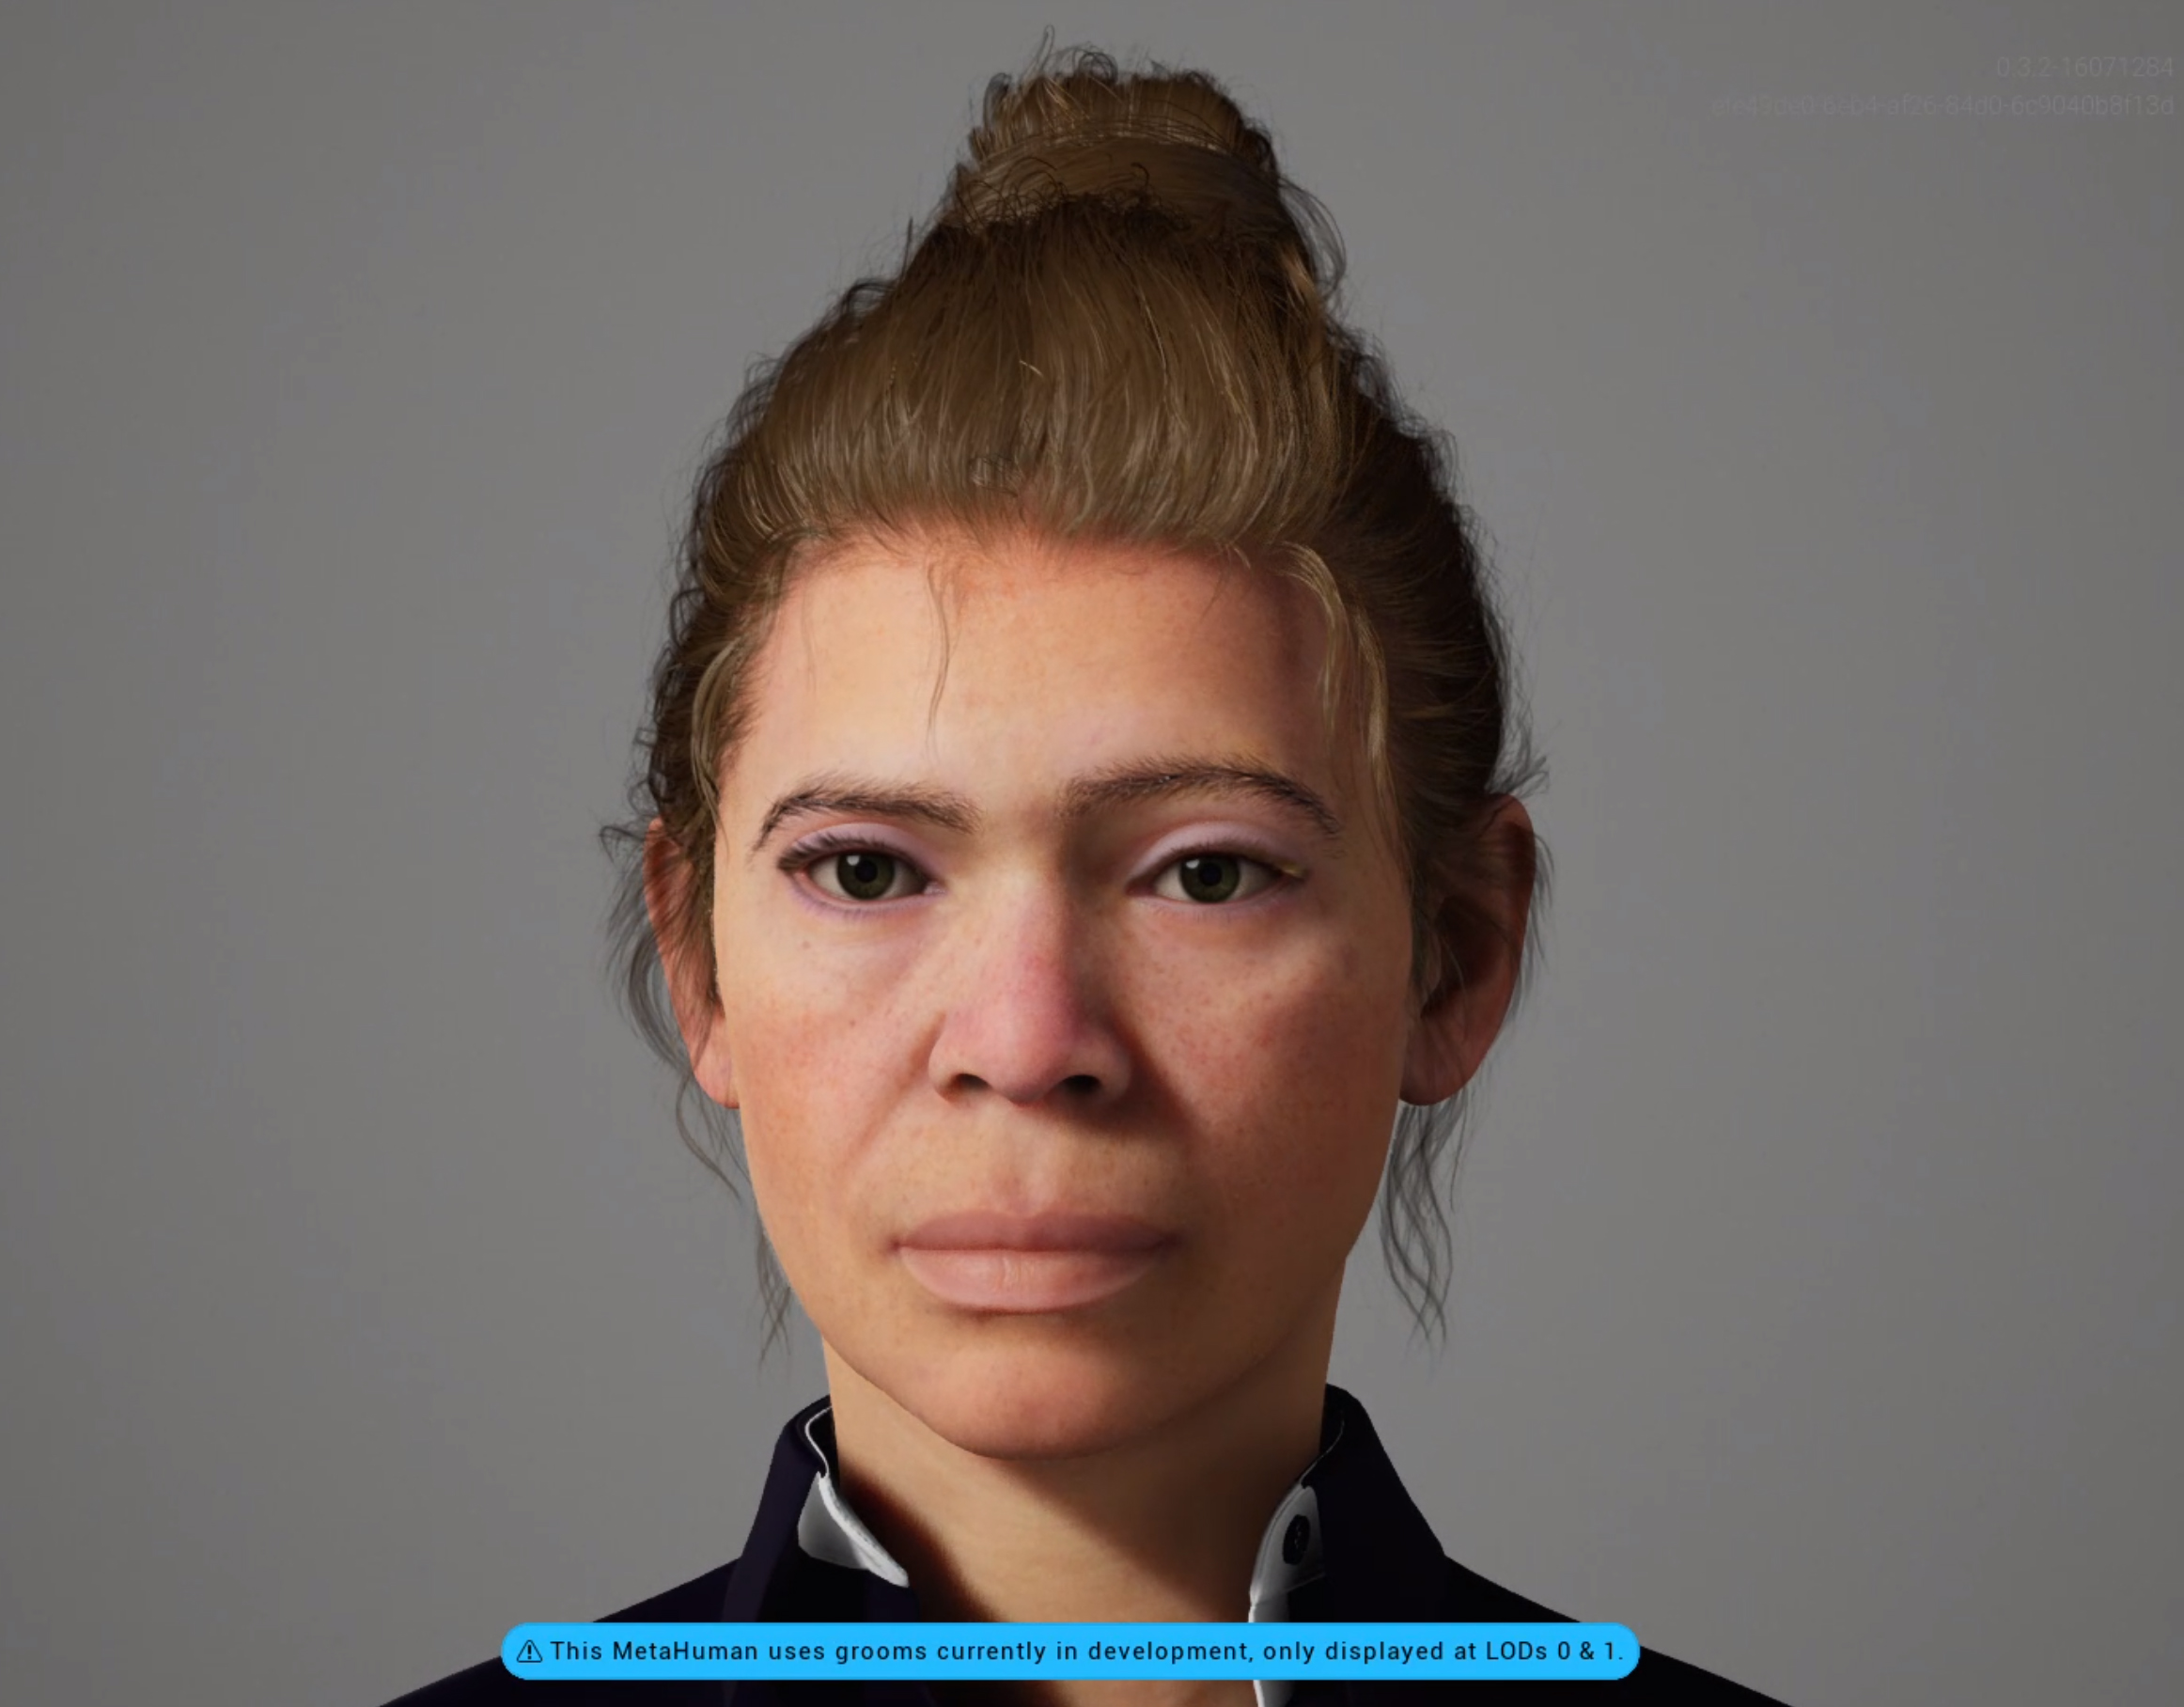 This is Ayleen a MetaHuman created with the Unreal Engine Metahuman Creator